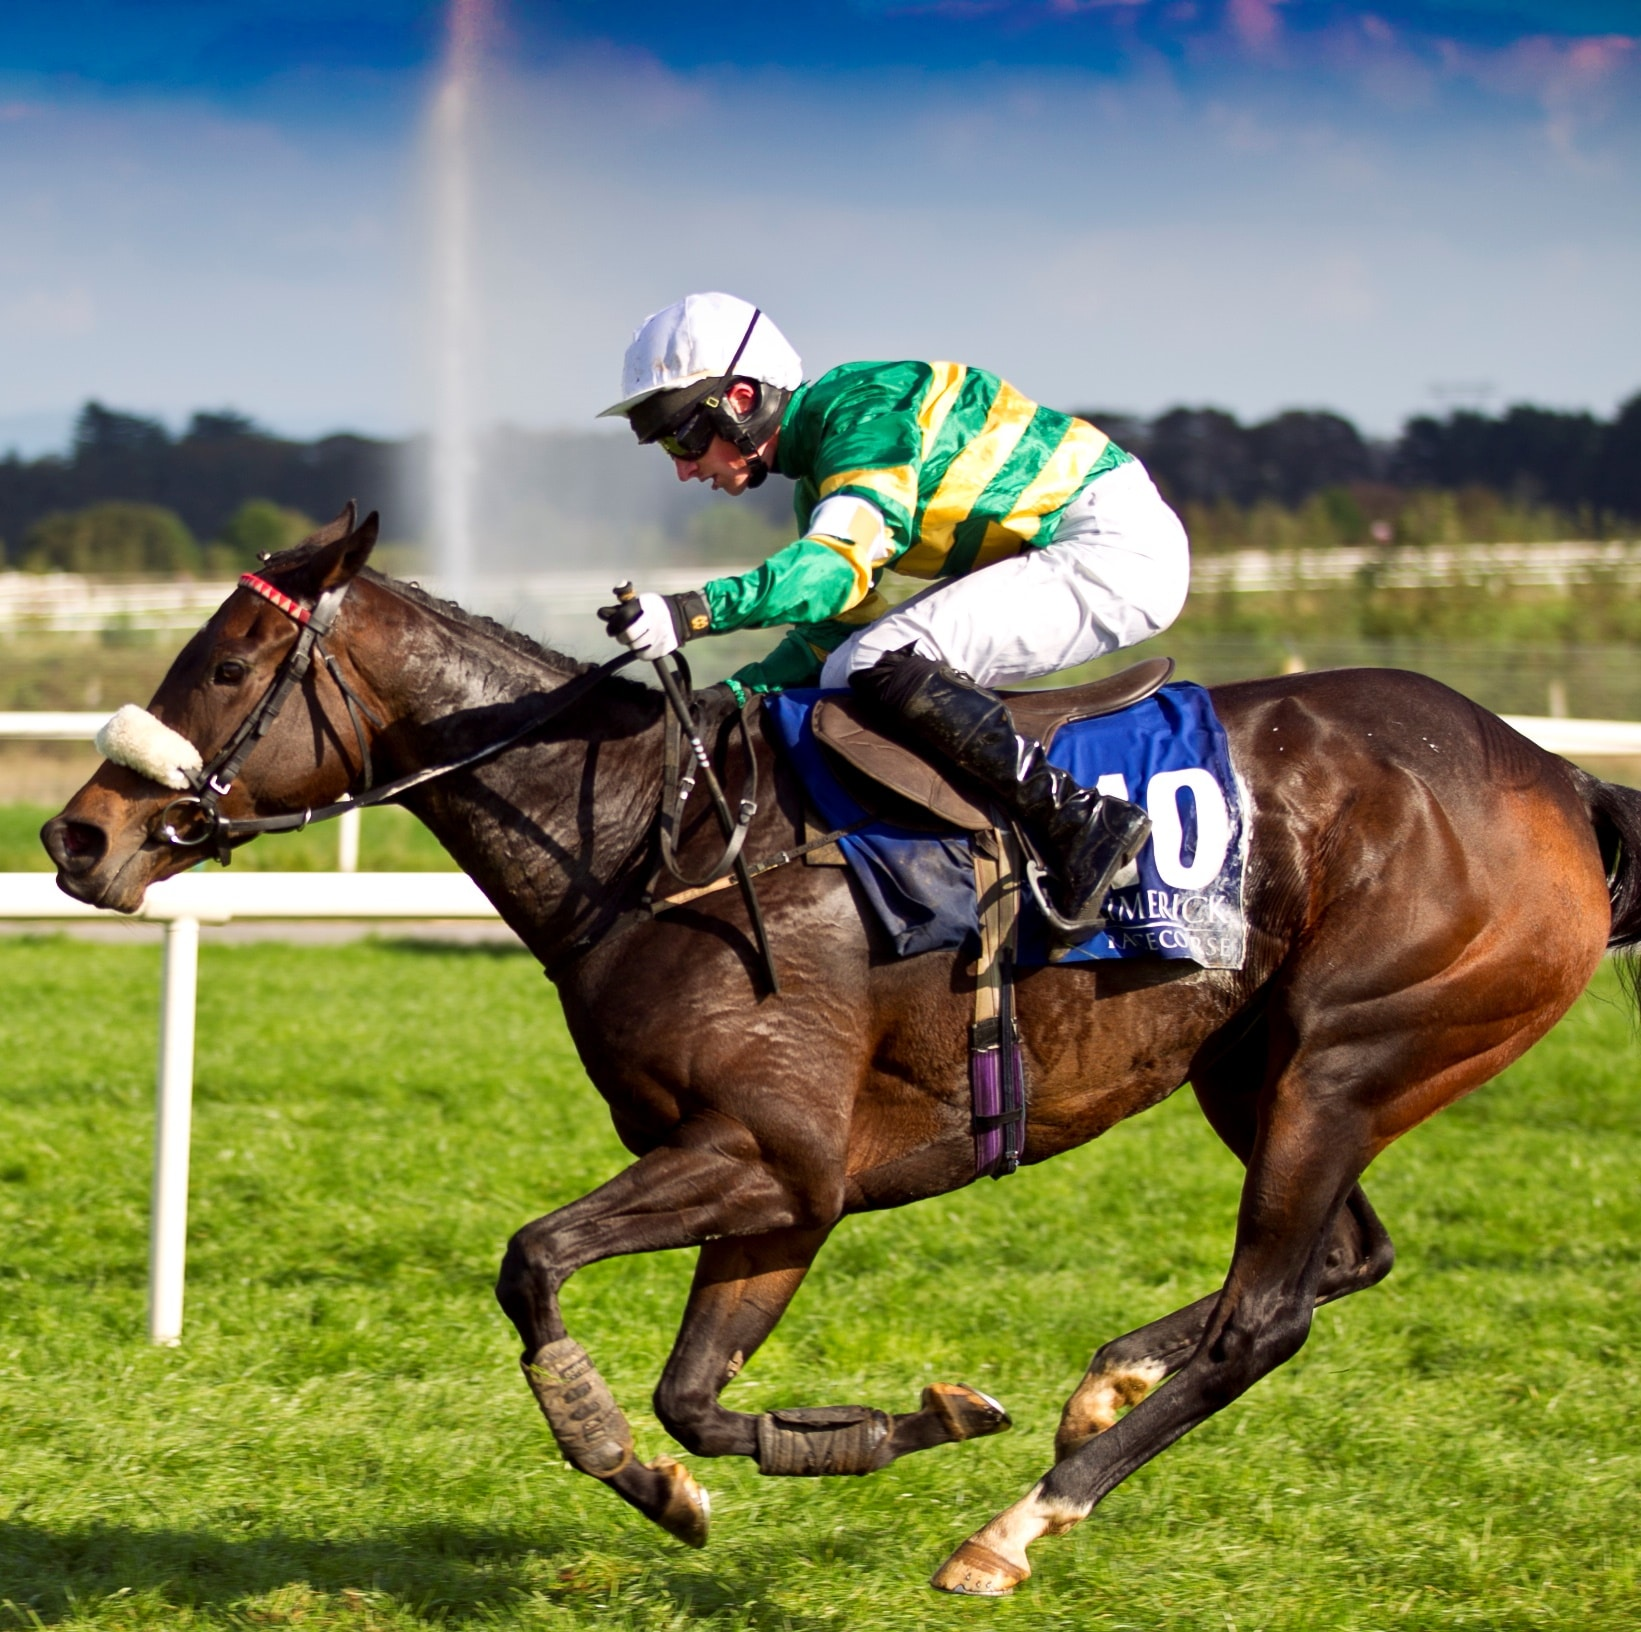 Home to Horse Racing in Limerick| Limerick Races